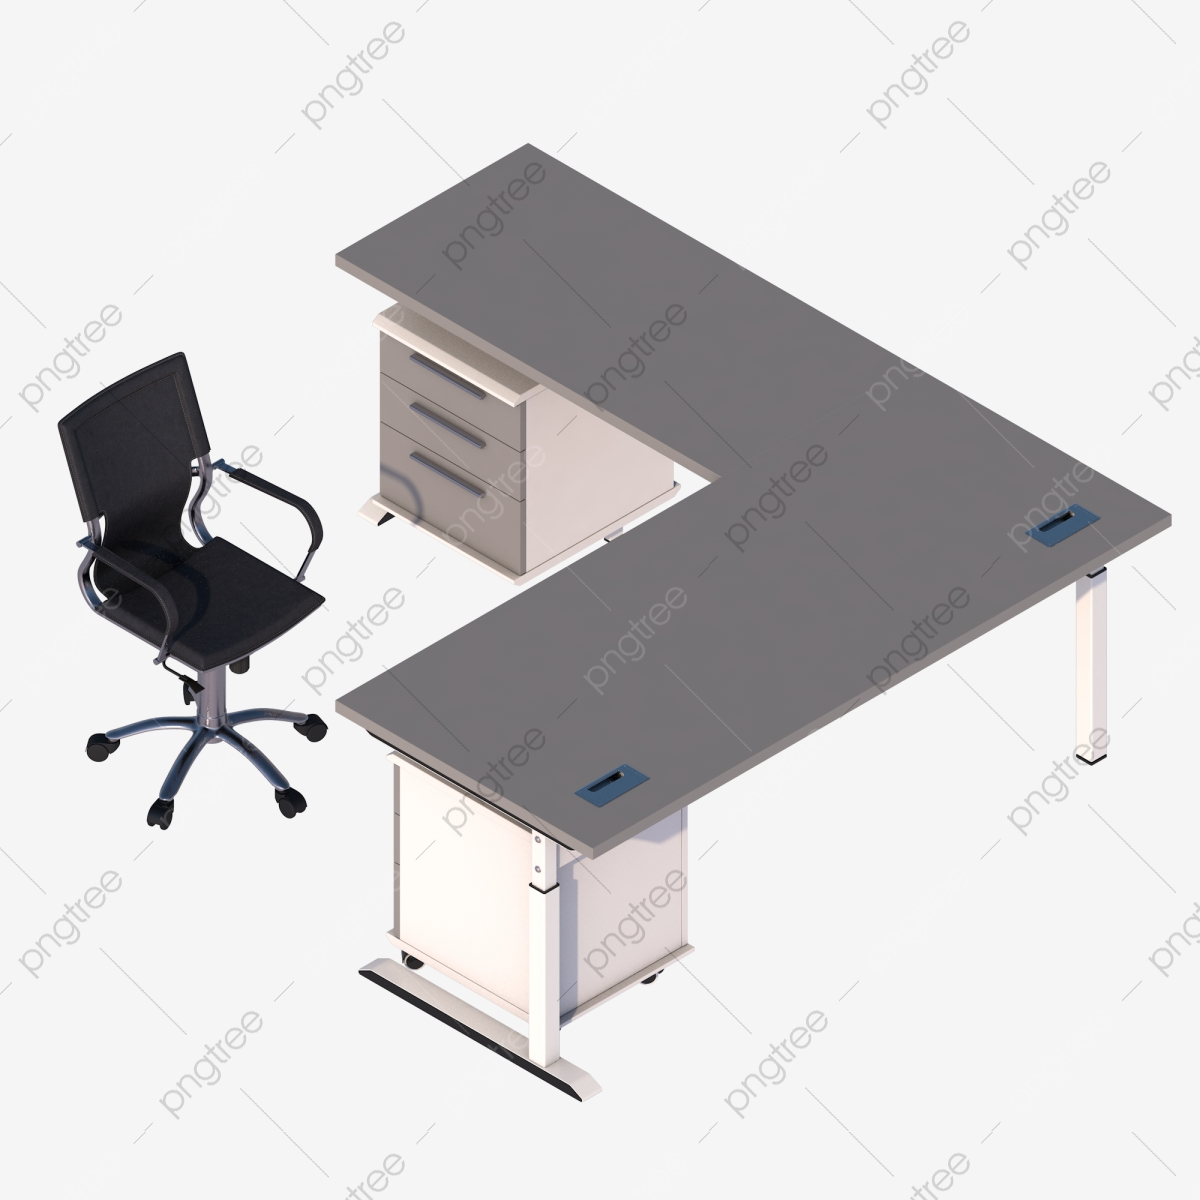 Image of: Business Office And Table Chair Set 2 5d Commercial Elements Business Office Commercial Png Transparent Clipart Image And Psd File For Free Download